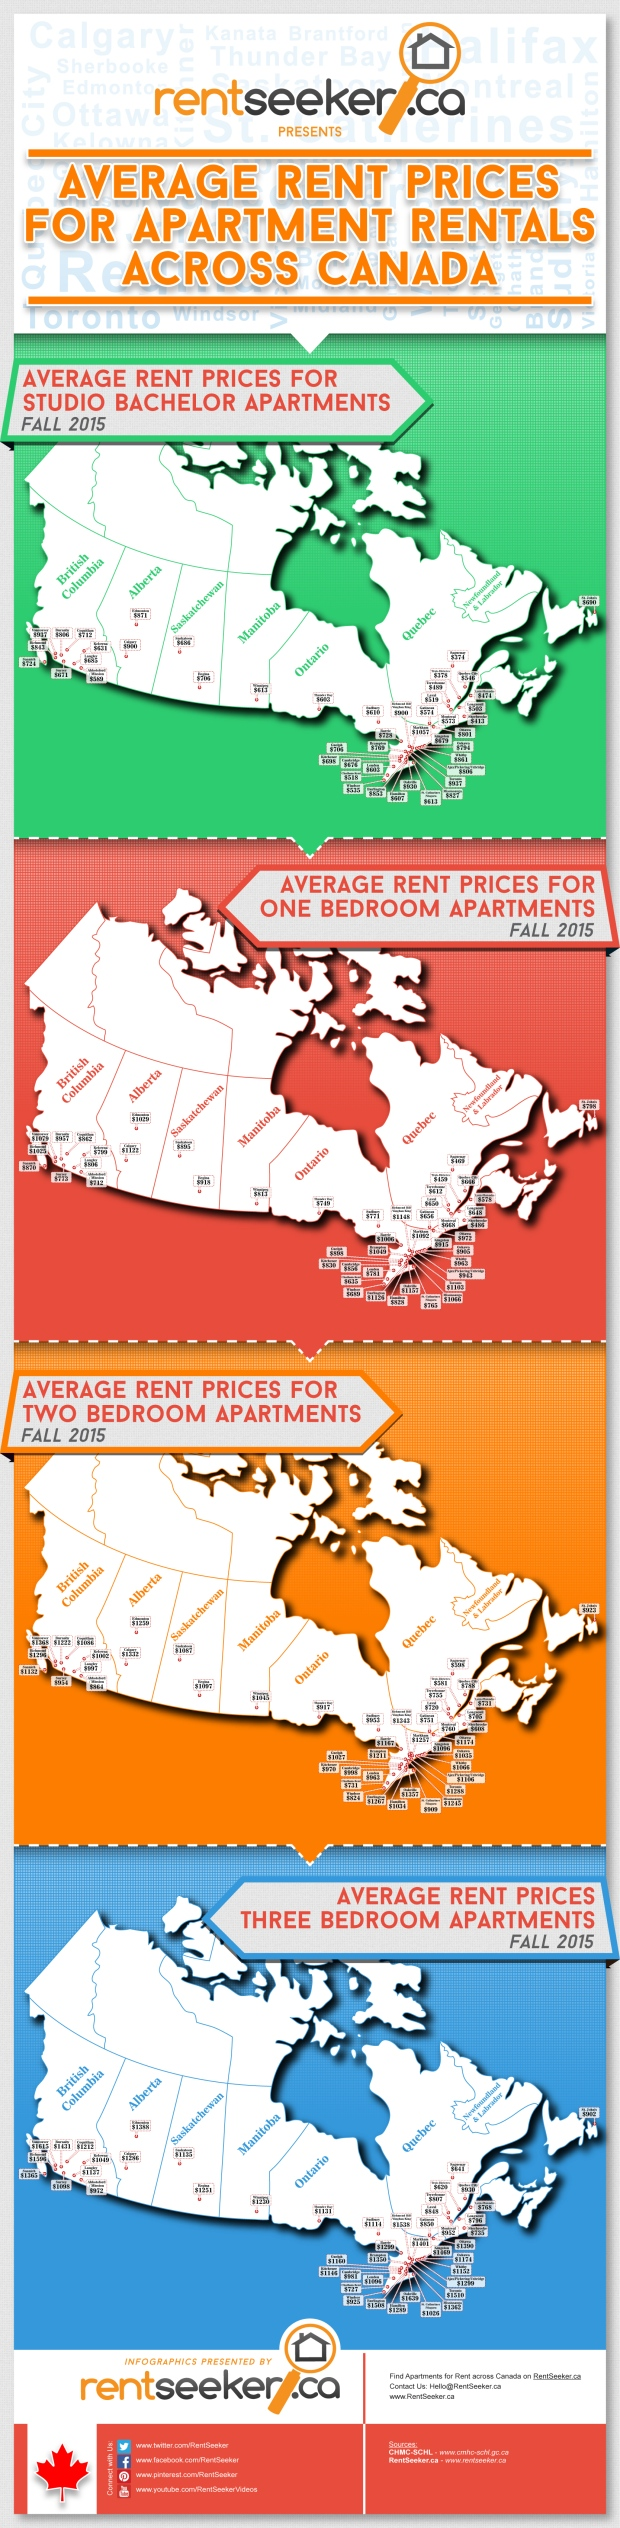 Report reveals average rent prices across Canada | CTV News